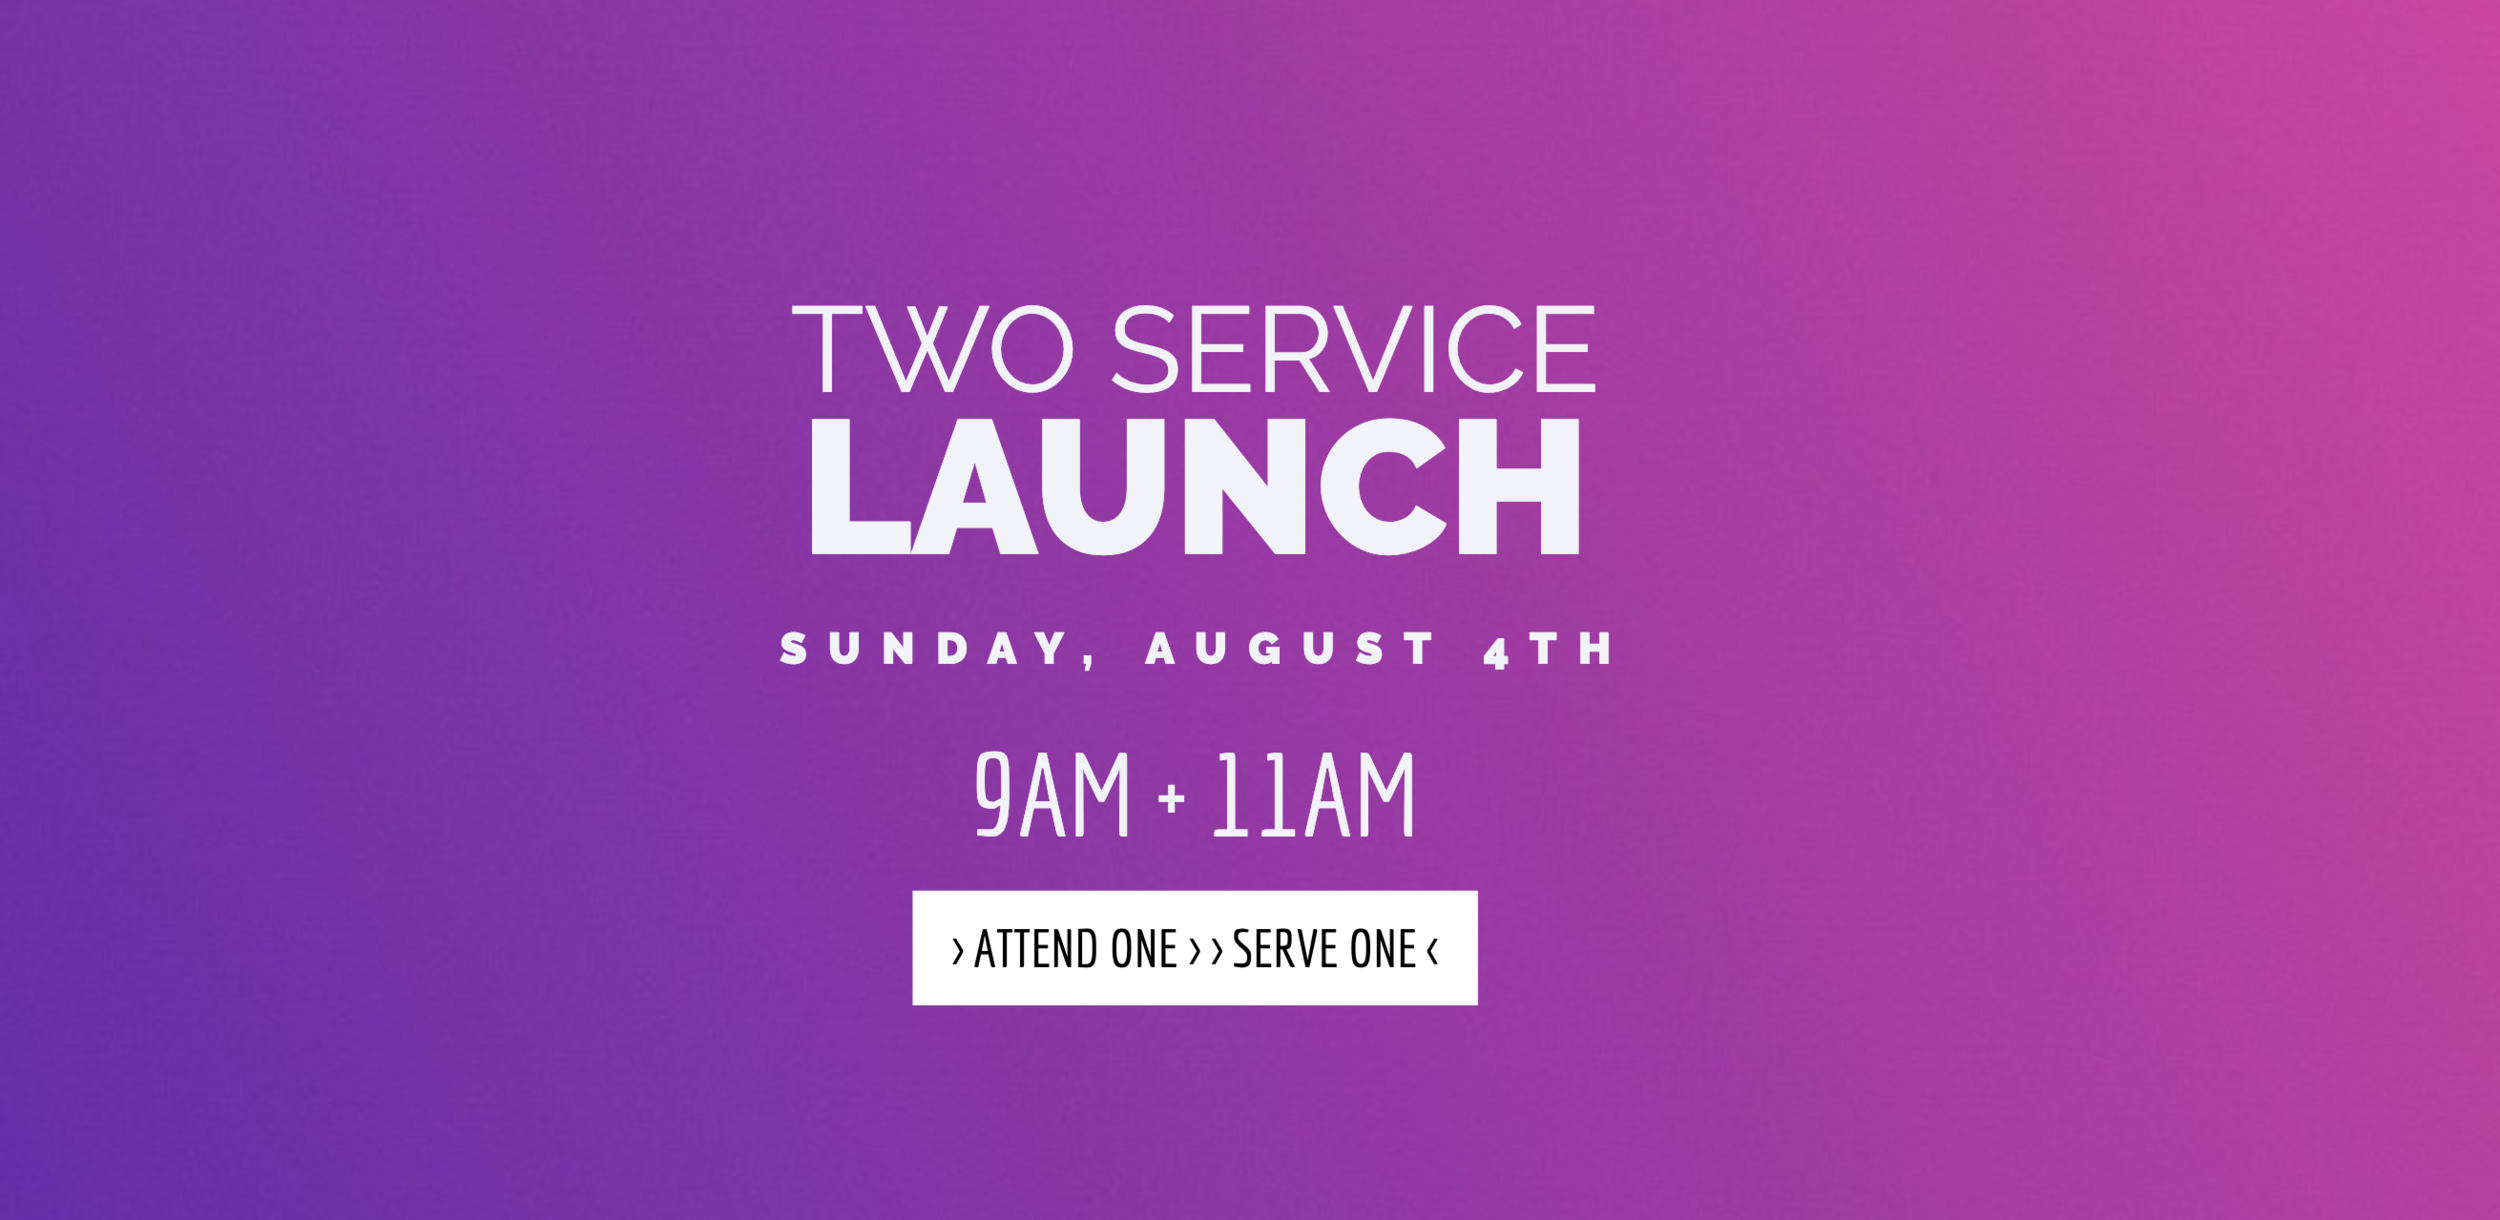 2 Sunday Service times at The Anchor Church starting August 4th